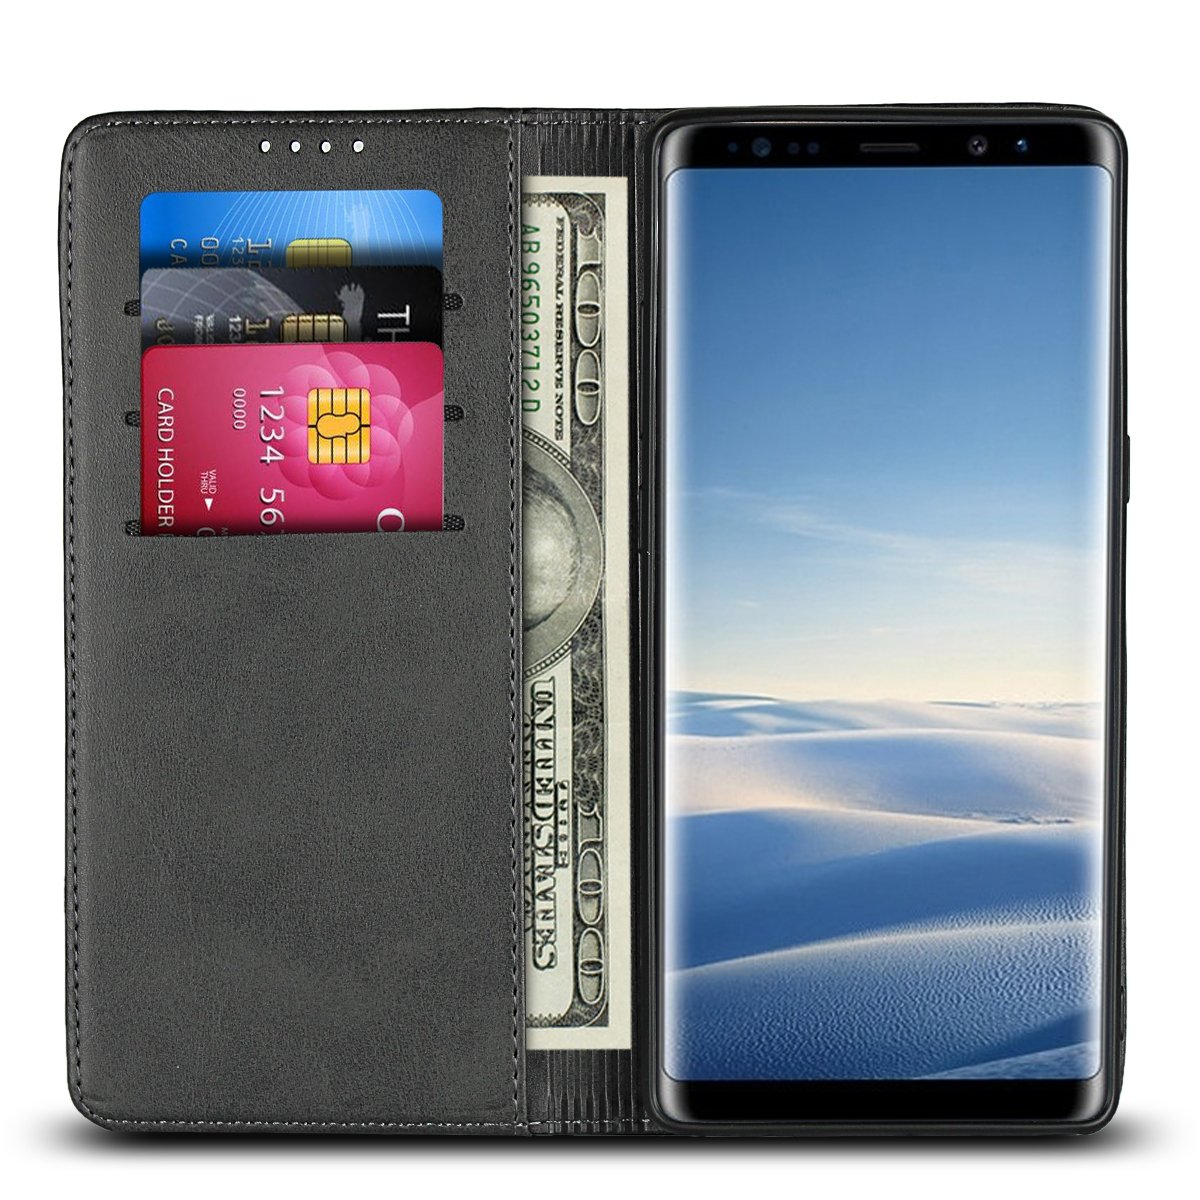 Galaxy Note 9 Leather Wallet Case, PU Leather Pouch Folio Flip Purse Bag Wallet Case with Credit Card Holder Magnetic Closure Protective Cell Phone Cover for Samsung Galaxy Note 9 (2018) 6.4'' - Black